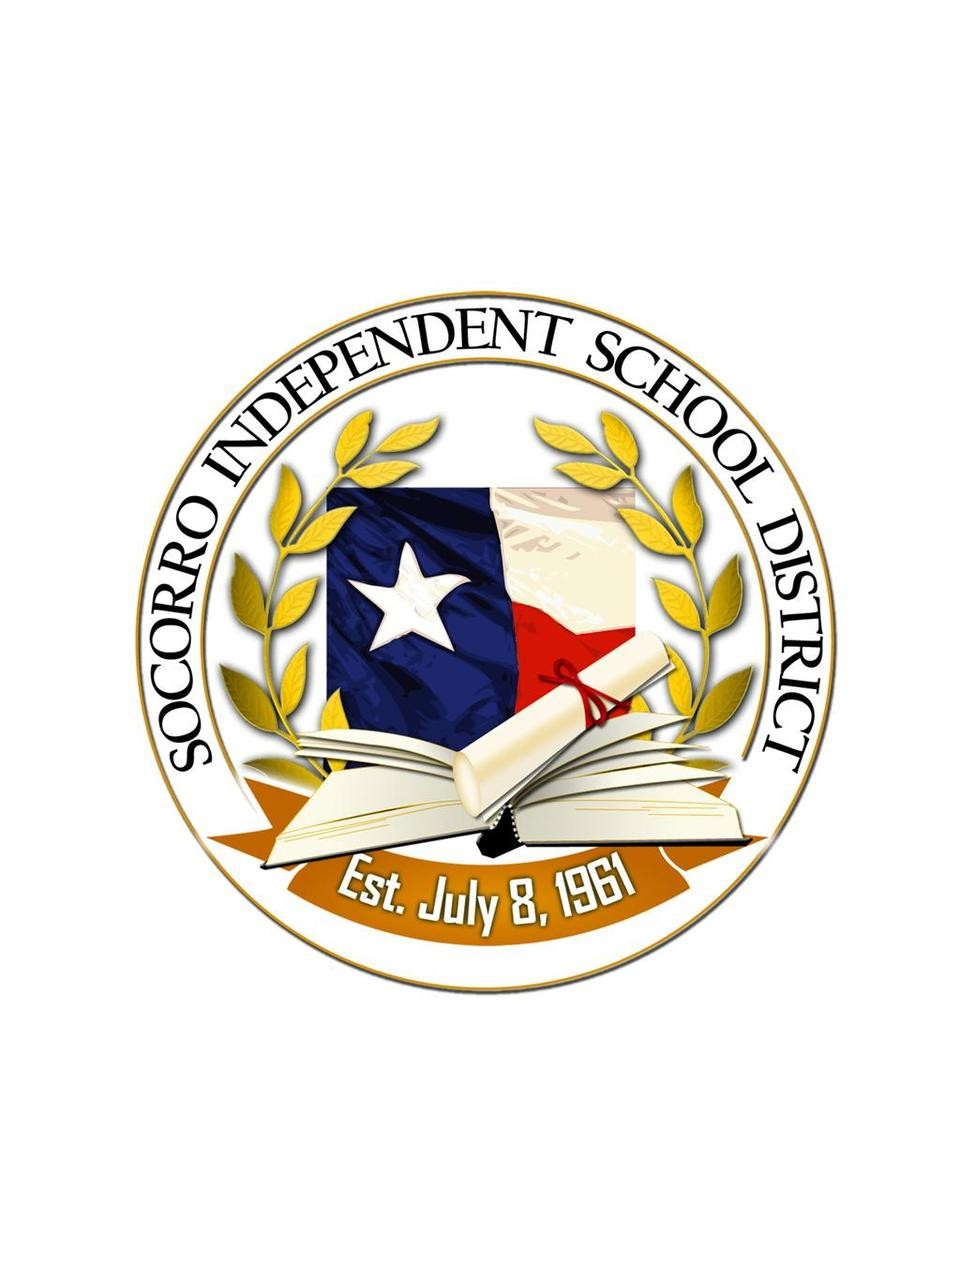 School calendar for 2020 21 and 2021 22 released for Socorro ISD